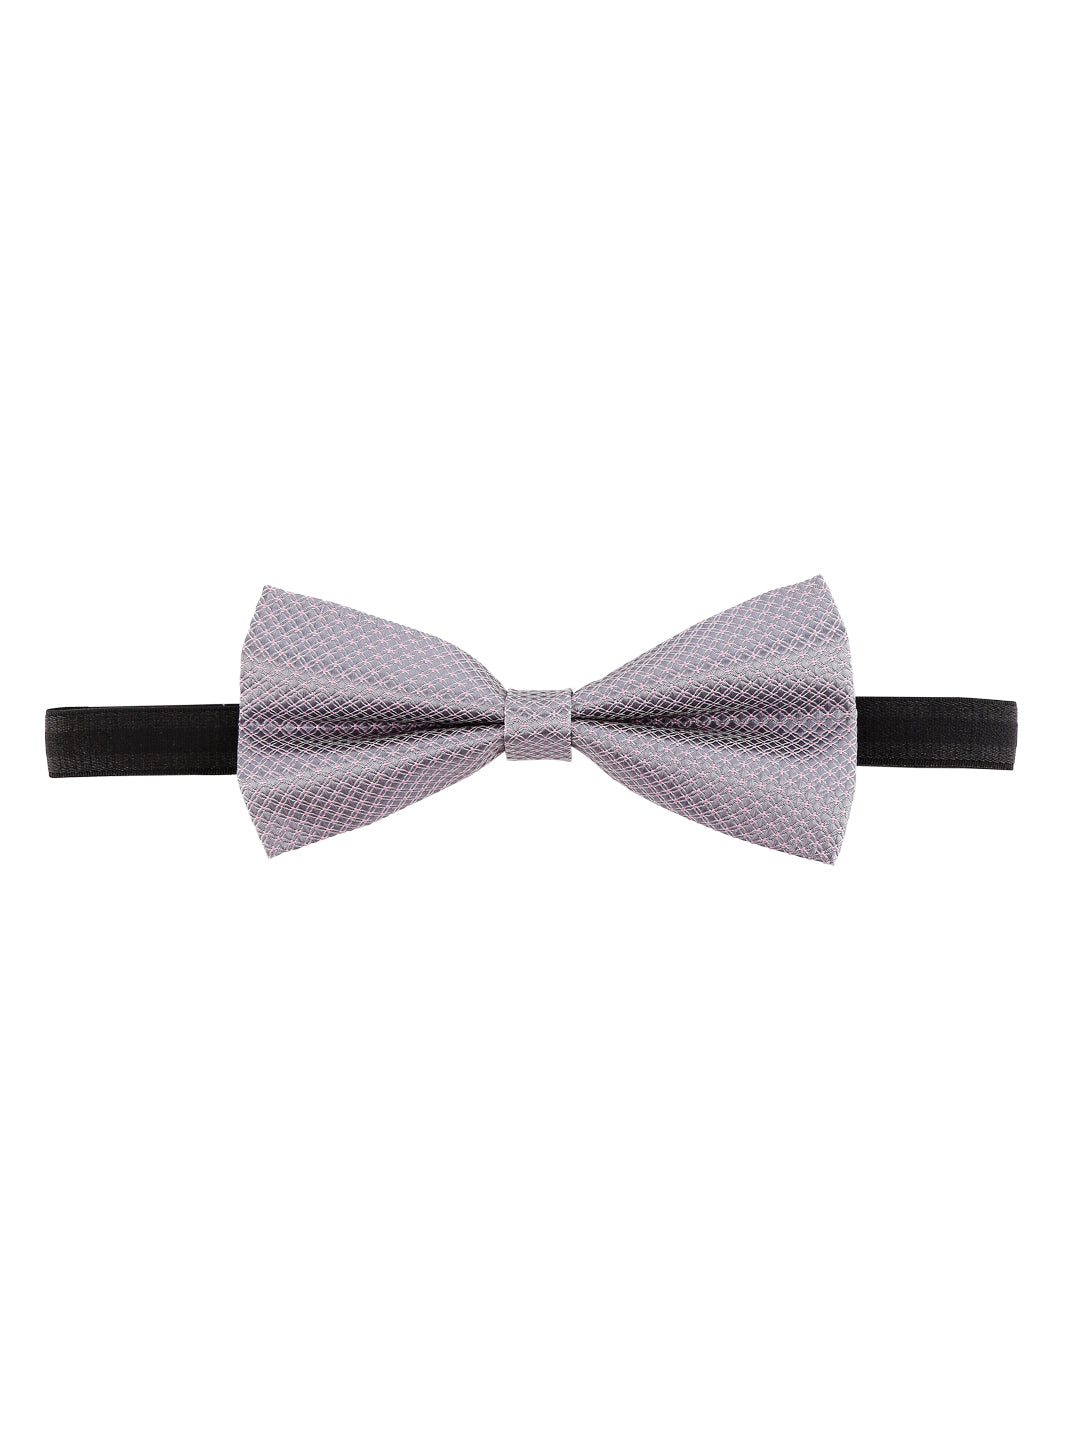 Zido Bow Tie for Men BJQ708